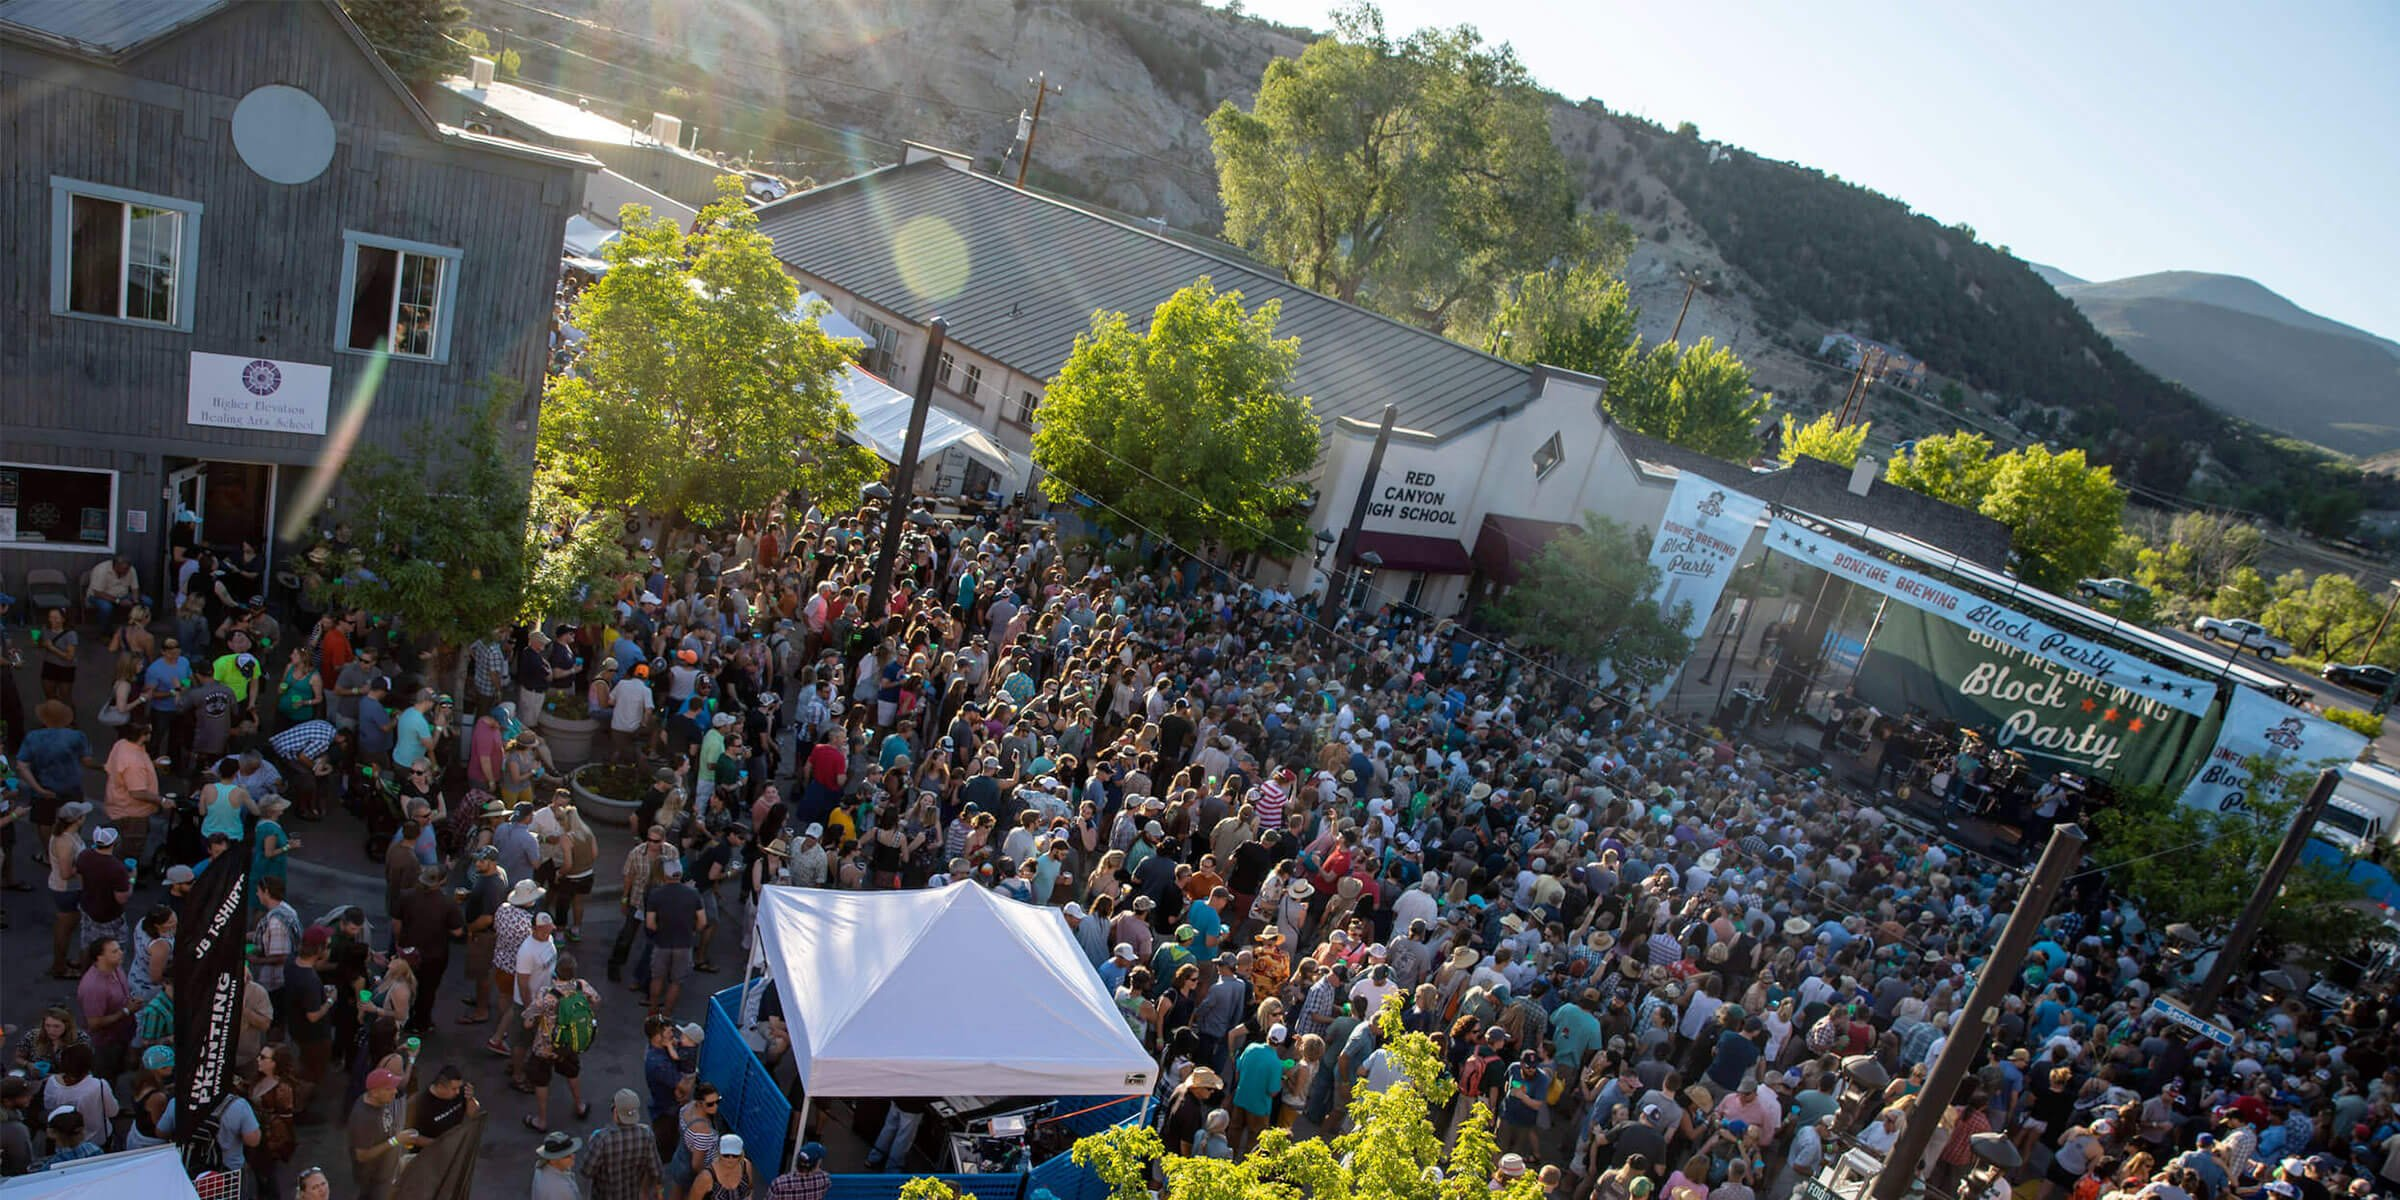 Due to the coronavirus, Bonfire Brewing and Optimum Events announced that the 2020 Bonfire Block Party will be postponed to the last weekend in August.